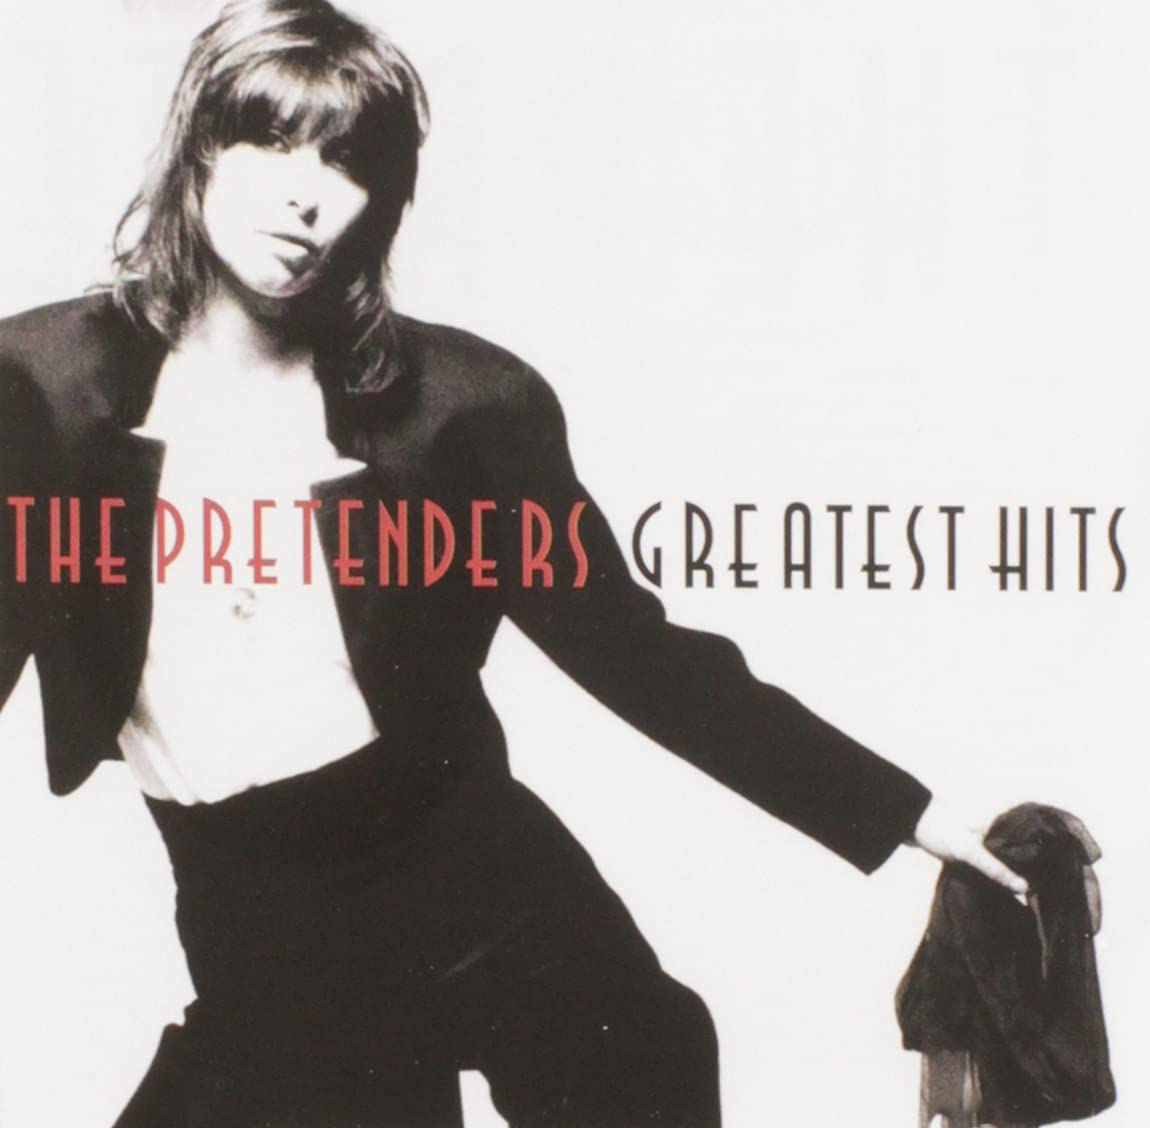 Animer and price revision The Pretenders - Hits Greatest Albuquerque Mall